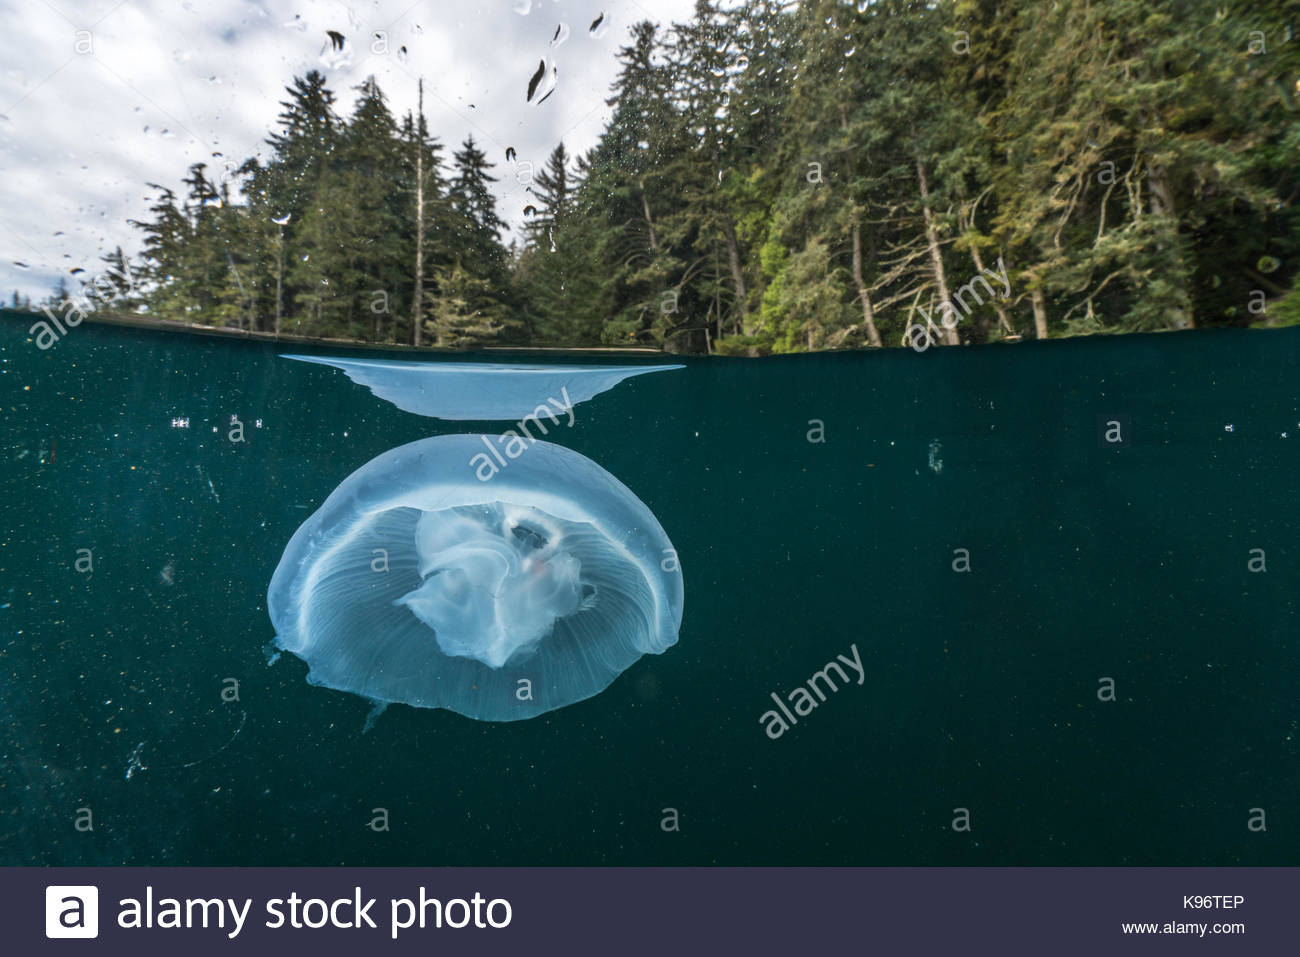 A jellyfish near the surface of the water with its reflection. - Stock Image